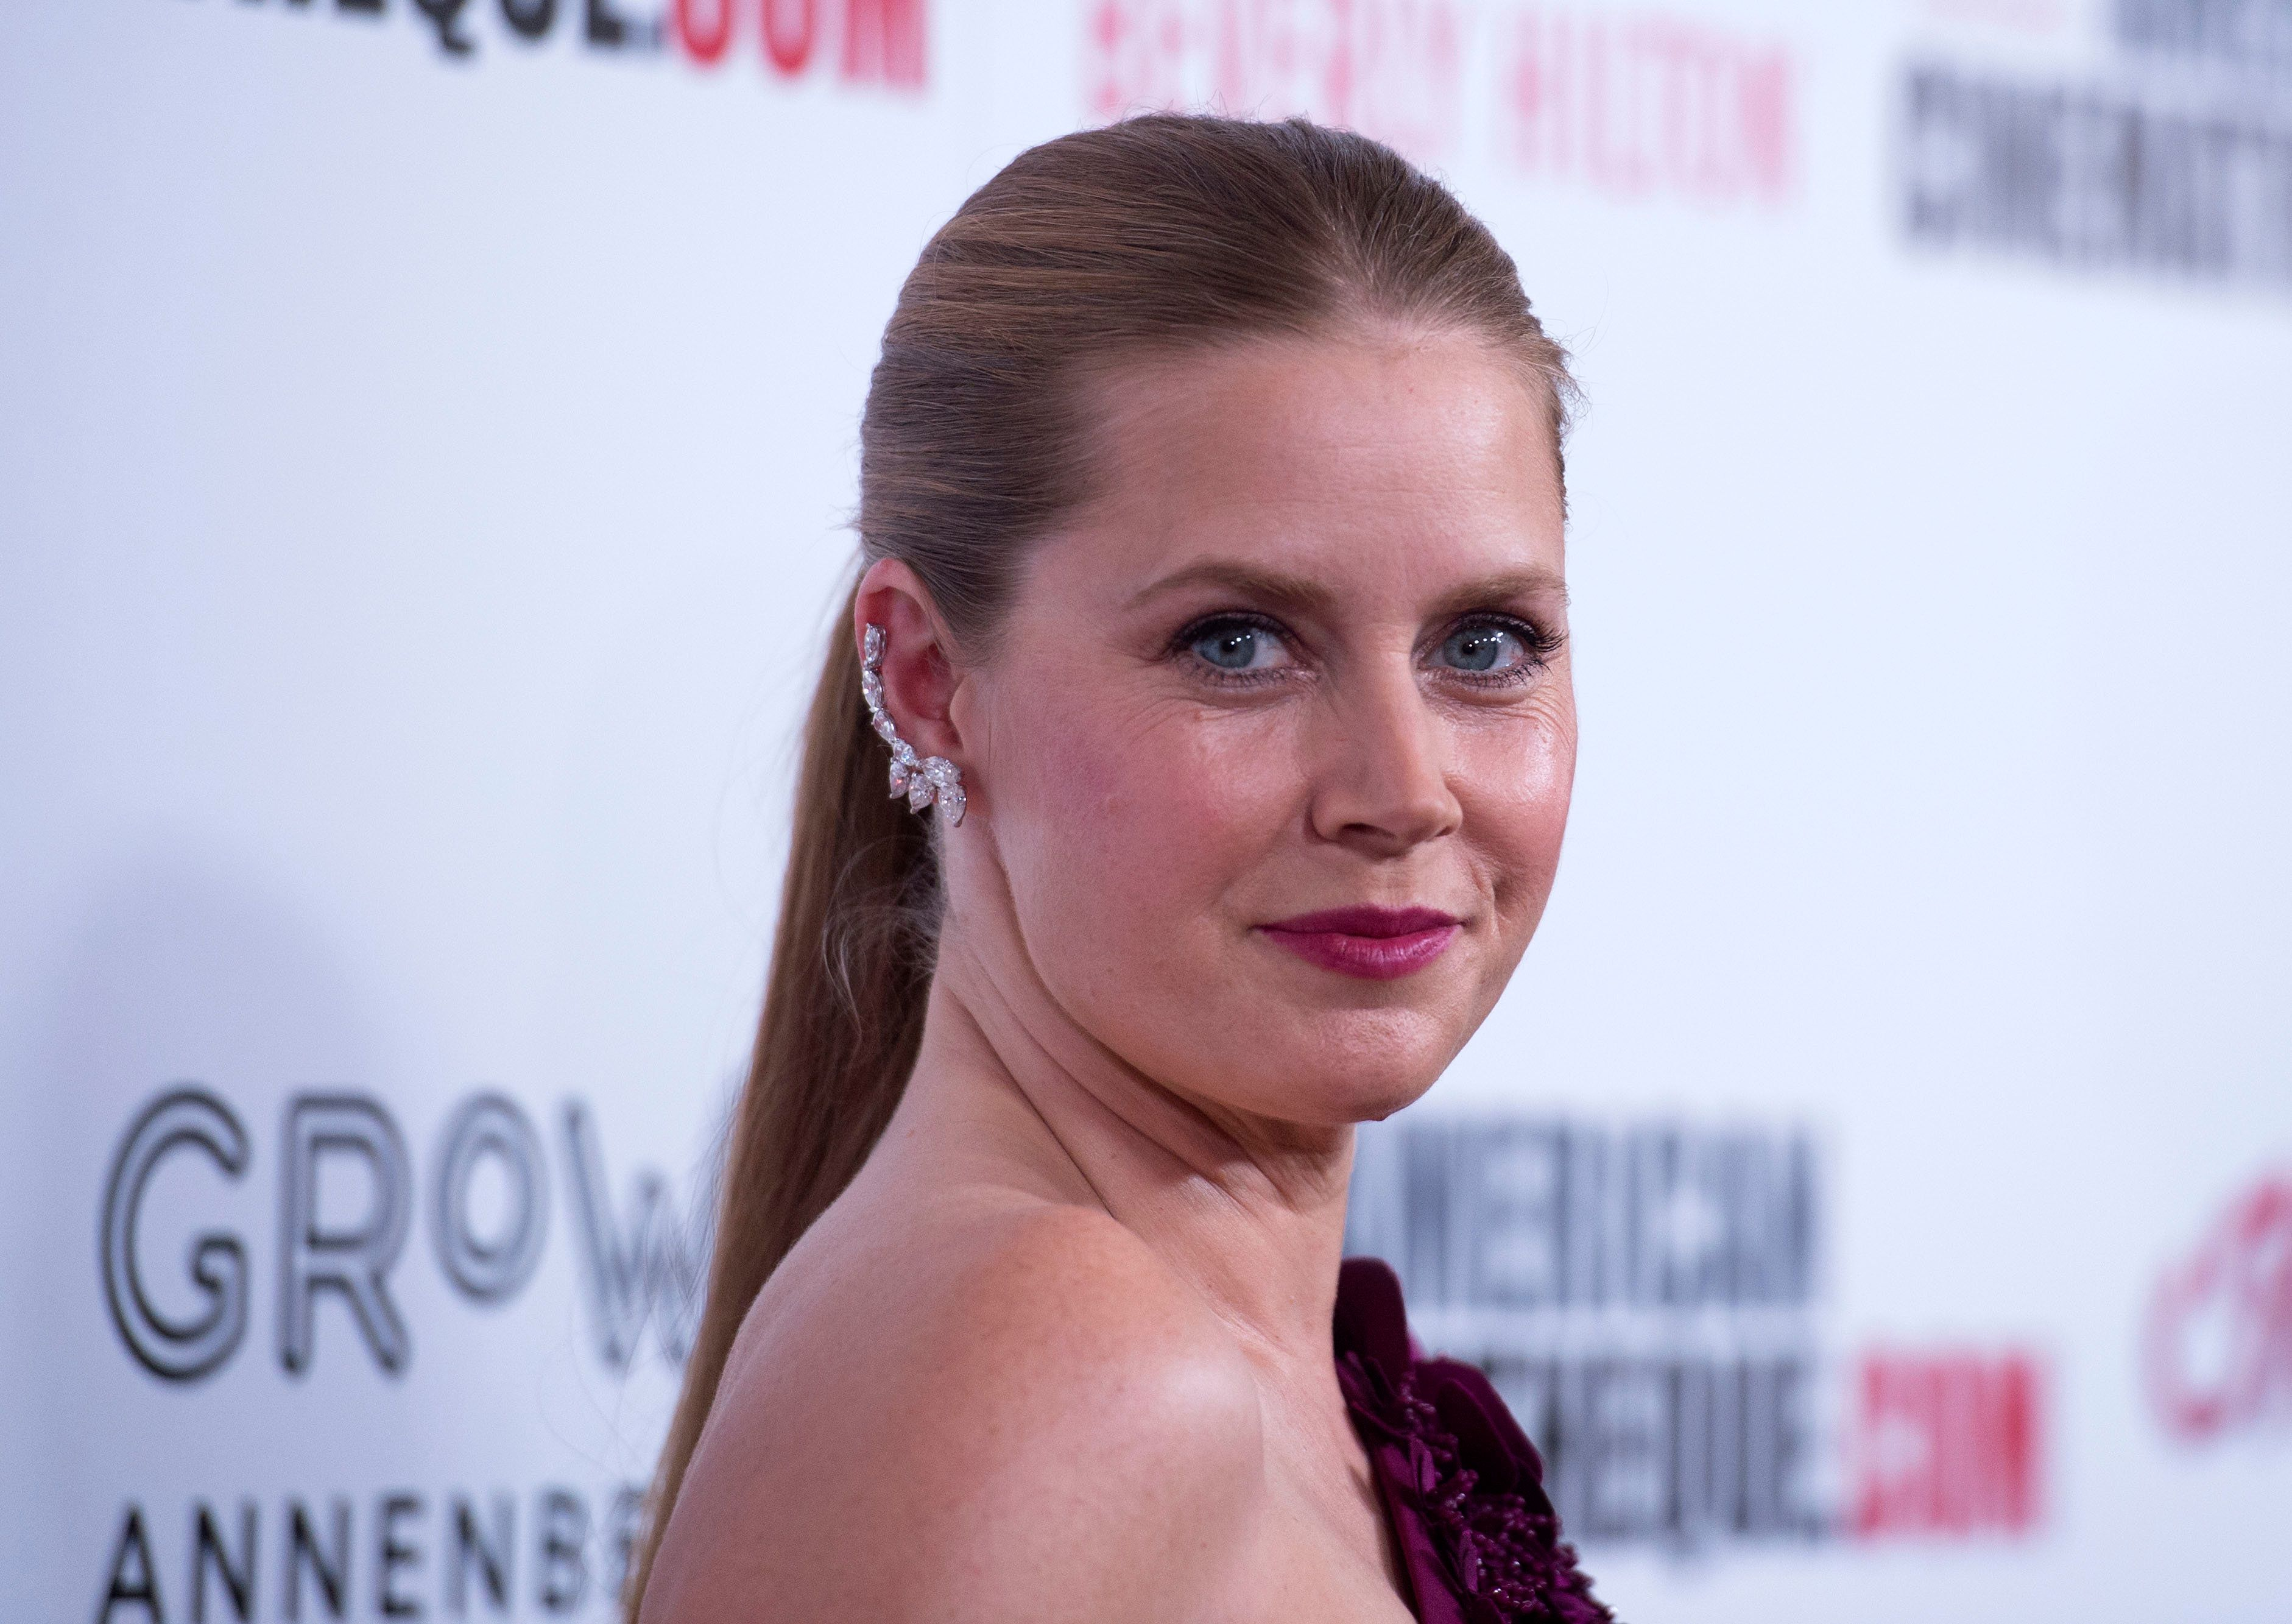 AmyAdams discussed her experiences in the film industry and the Me Too movementinan interview with The Holl